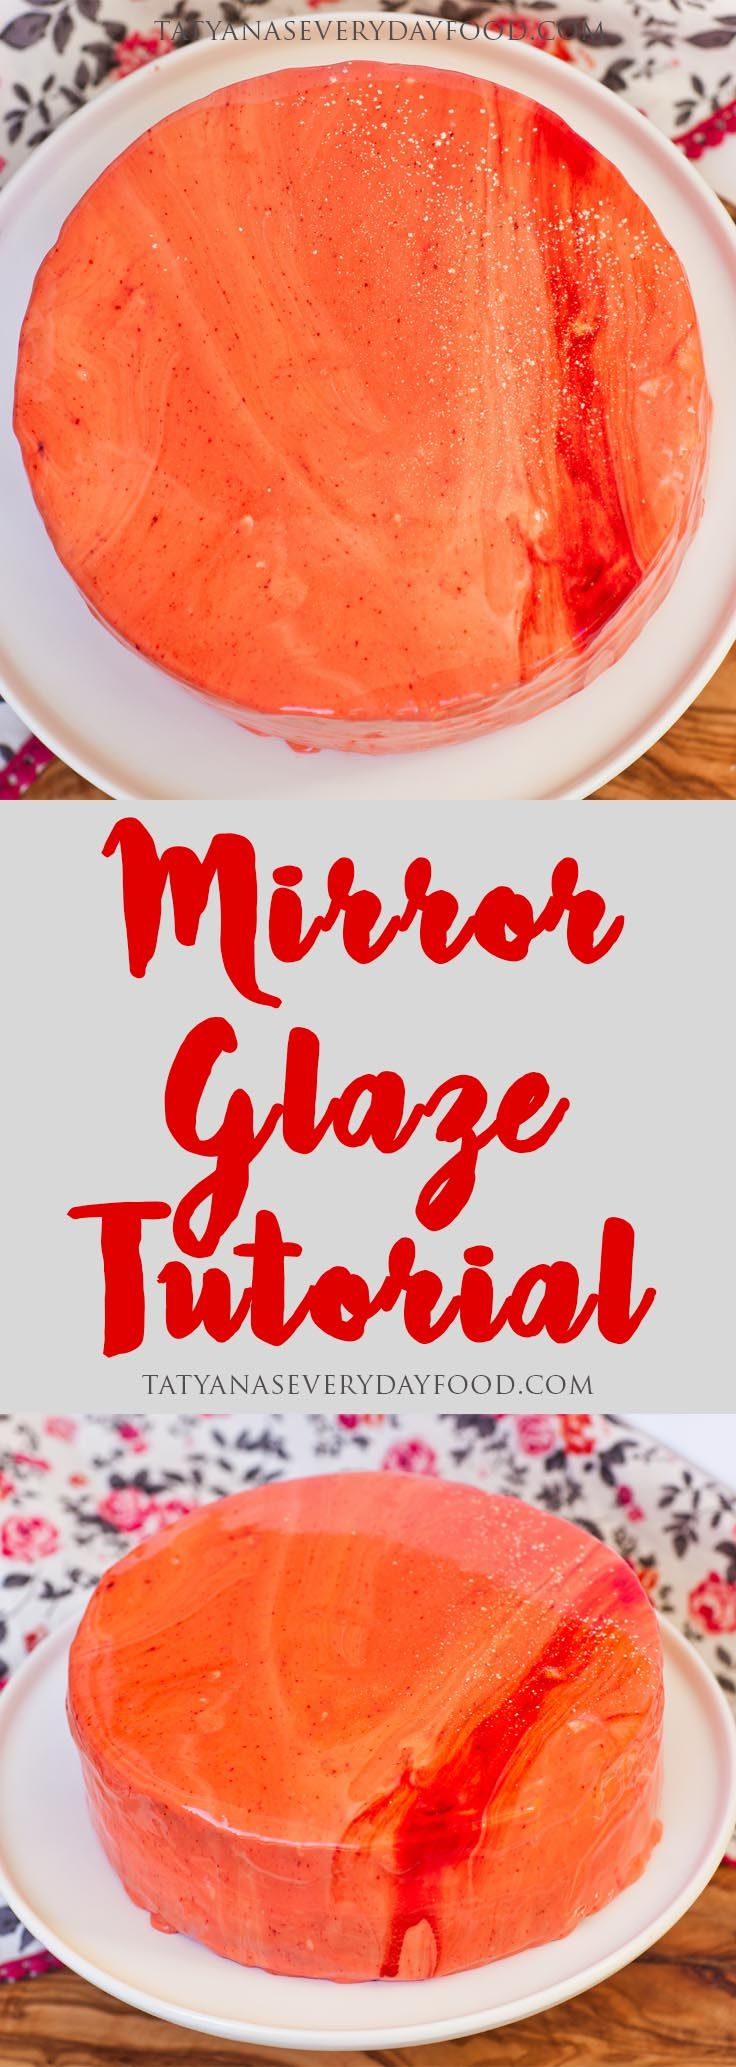 The newest, trendiest way to garnish a cake – the mirror glaze! In my step-by-step video tutorial, I'll show you how you can recreate this amazing finish at home. Find all the ingredients needed below in both grams and standard American measuring cups. This recipe makes a large batch of glaze, perfect for covering a […]